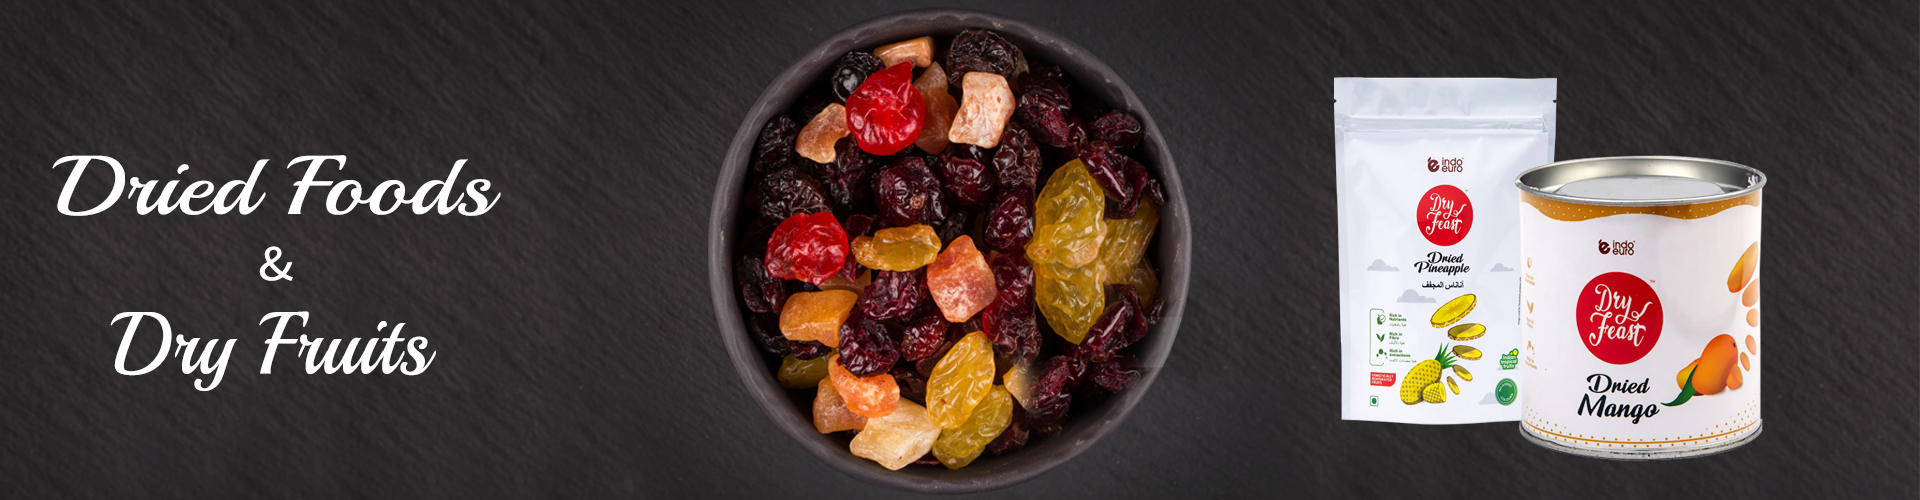 Dried foods & Dry fruits